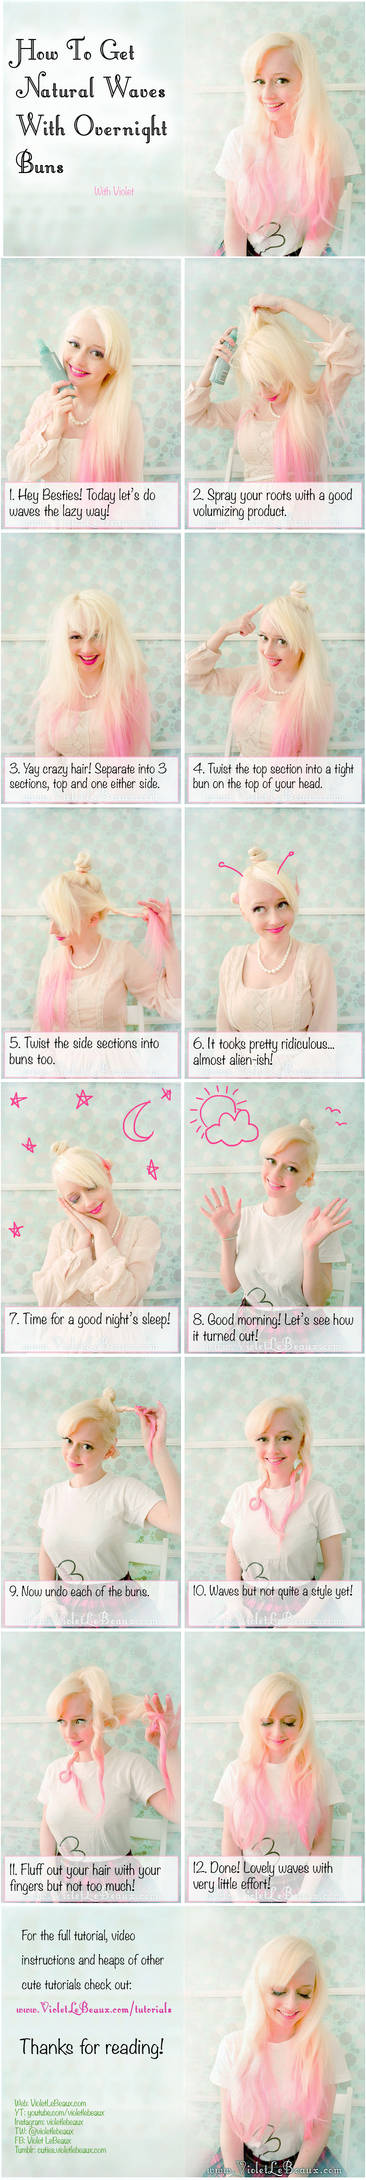 How To Use Buns For Easy Wavy Hair - Tutorial